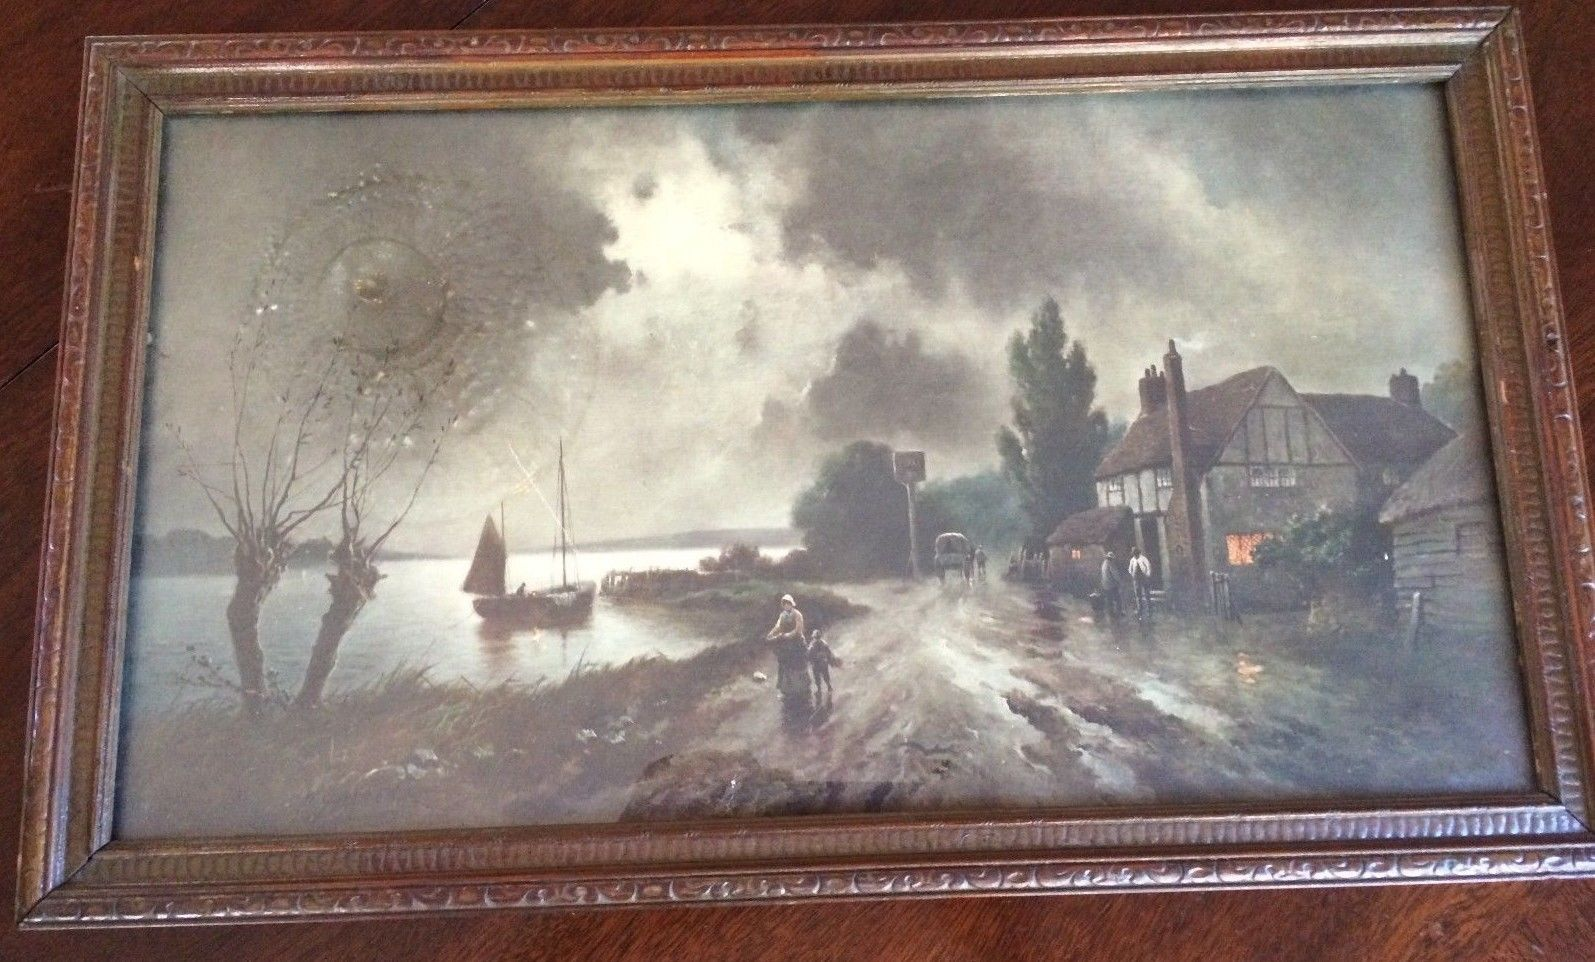 ANTIQUE/VINTAGE SEASIDE LANDSCAPE SCENE PRINT W/WOOD FRAME, VG